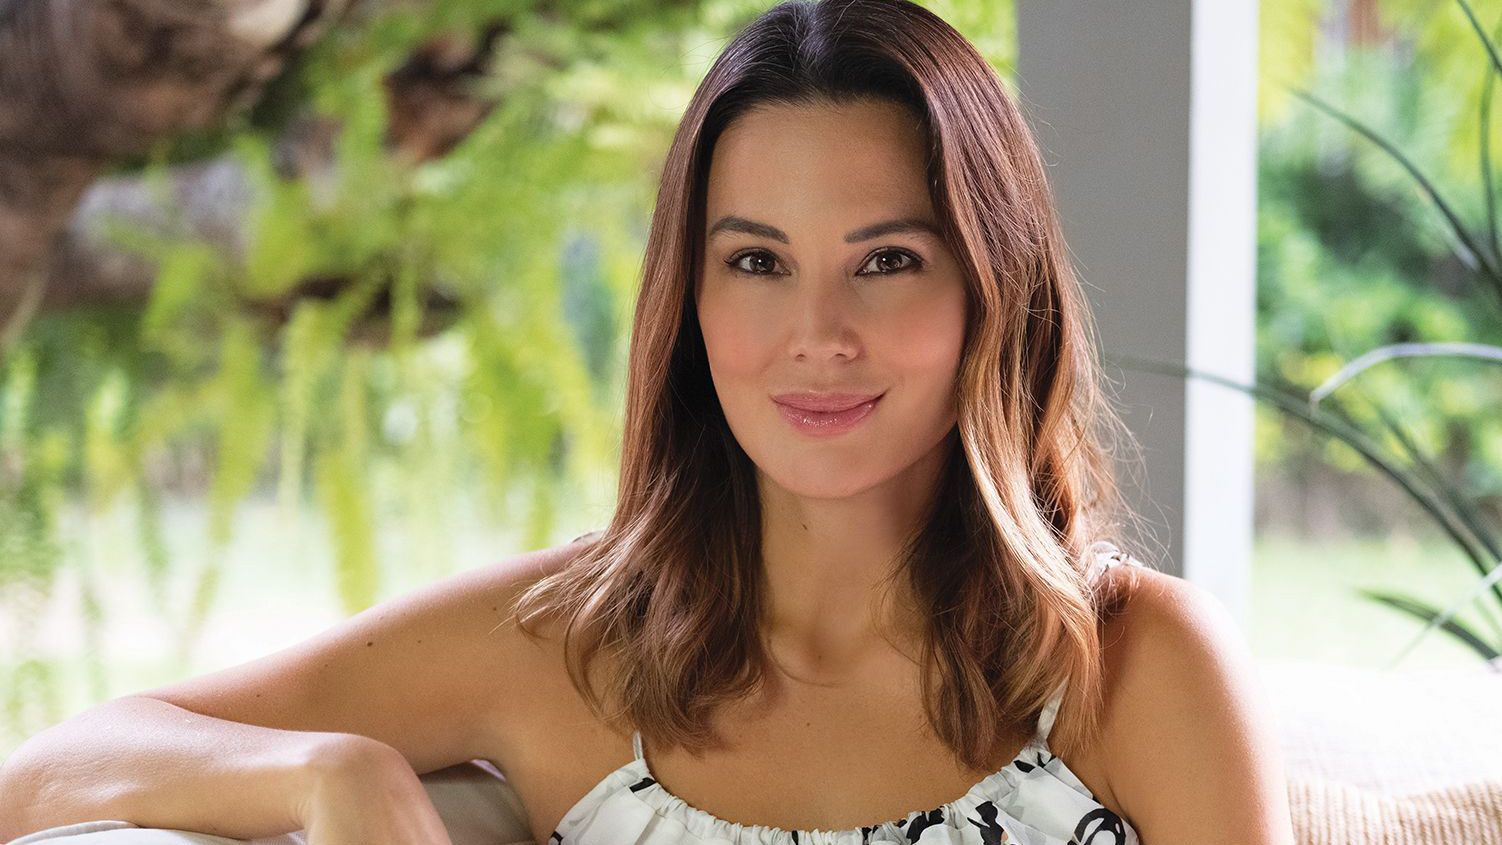 Wellness Advocate And Founder Of The Wholesome Table Bianca Araneta Elizalde Shares Her Recipe For Success